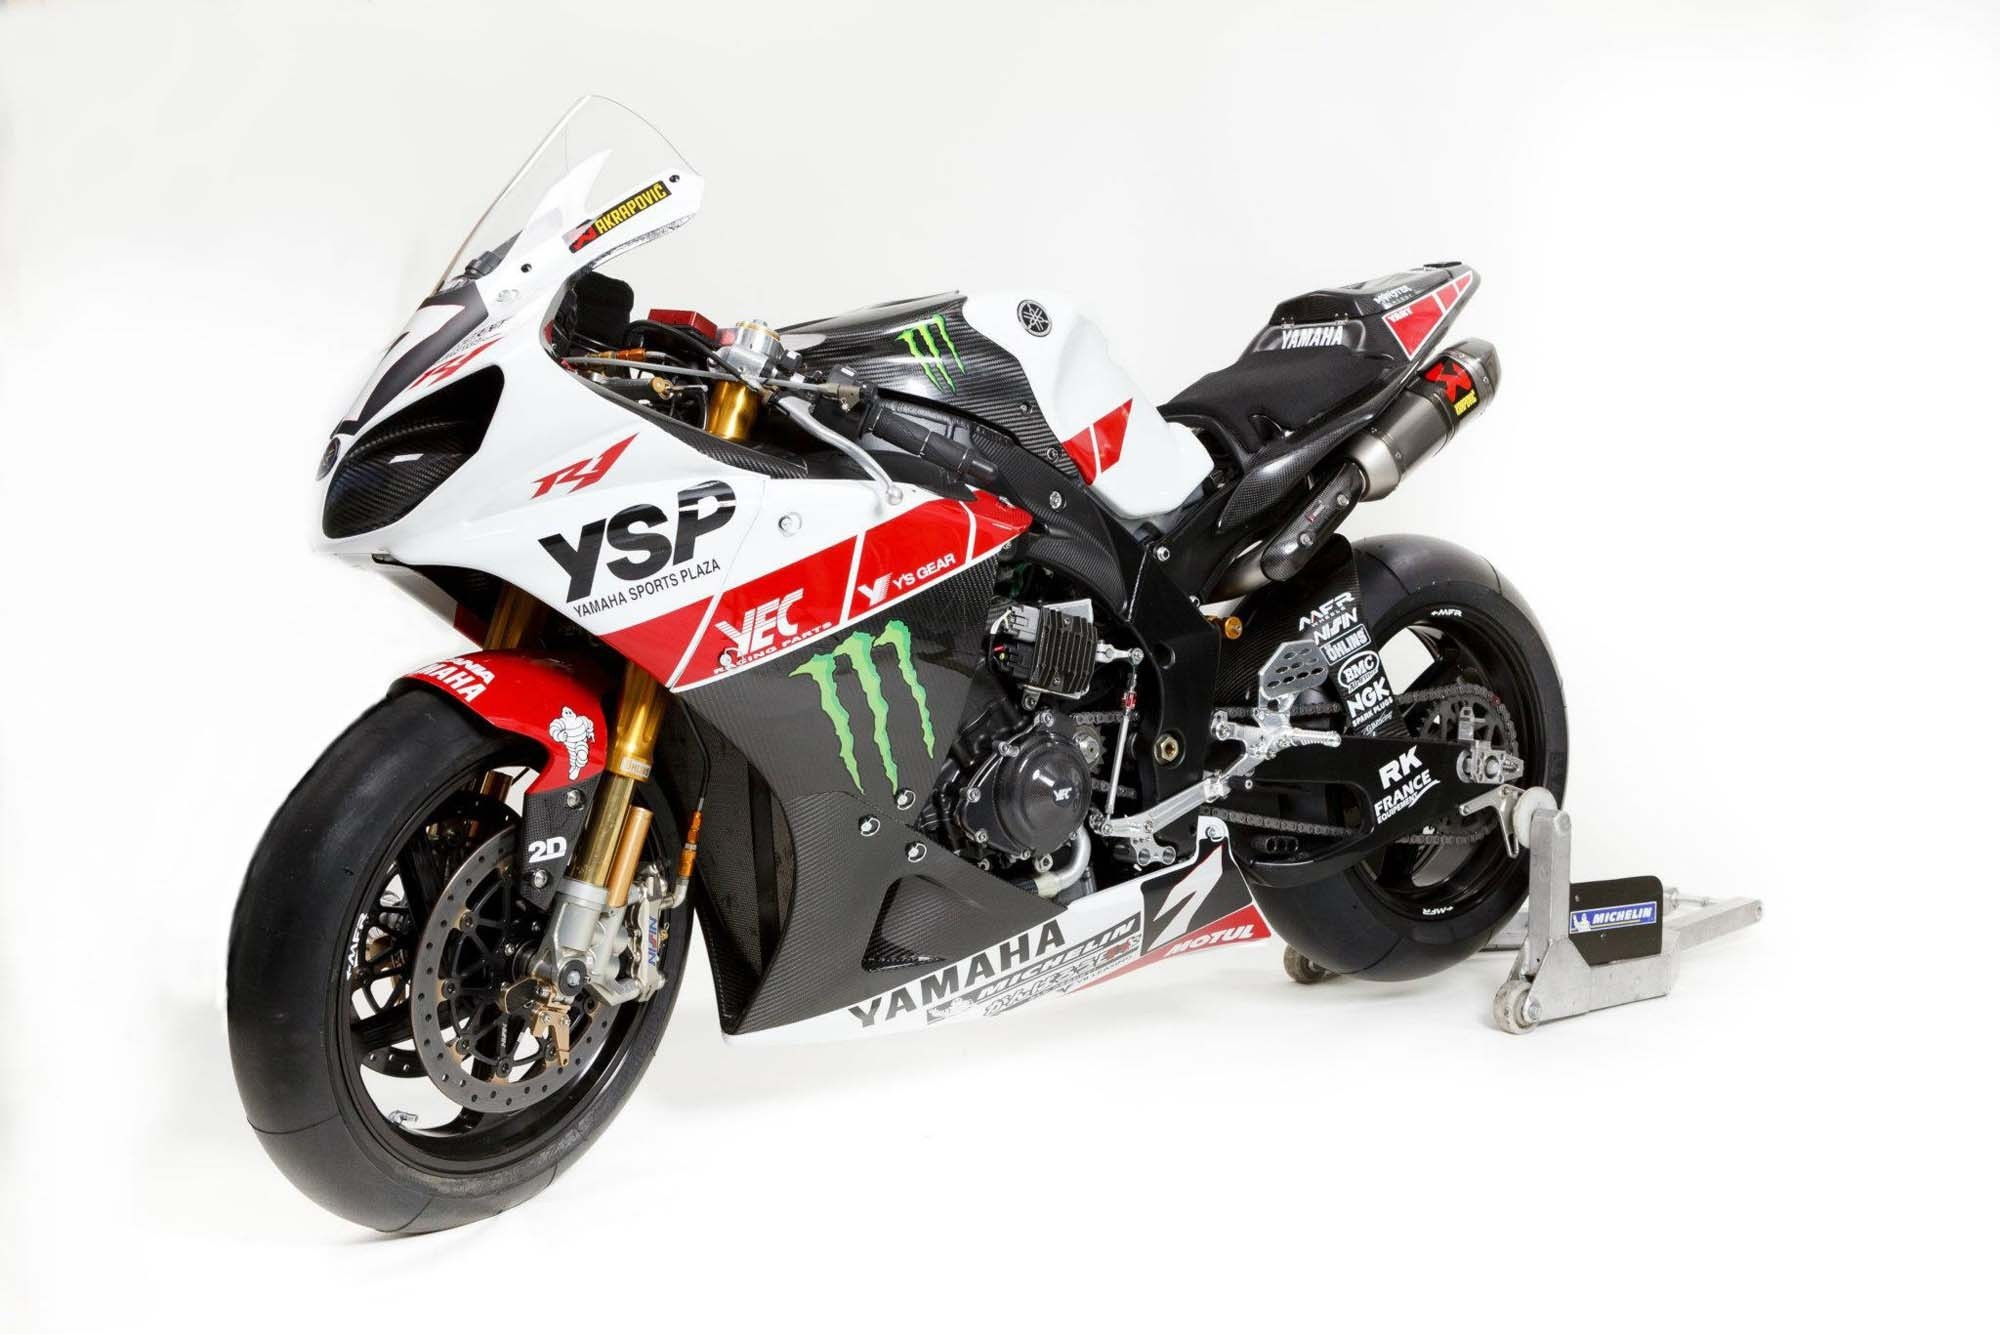 2009-2014 Yamaha YZF-R1 Pertormance Parts and Accessories